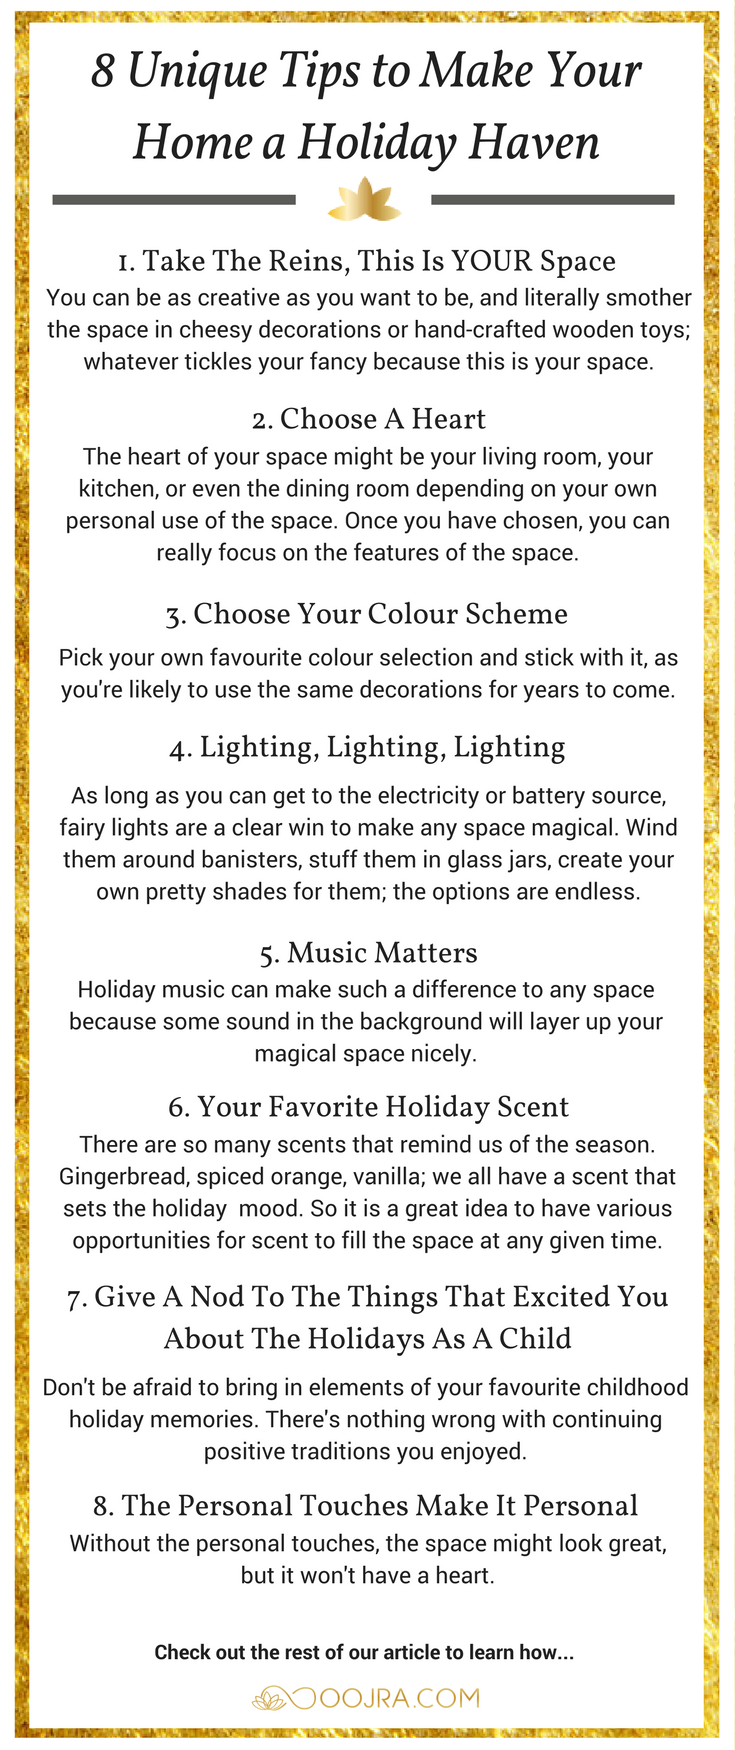 Make Your Home a Holiday Haven with These Unique Tips - Oojra